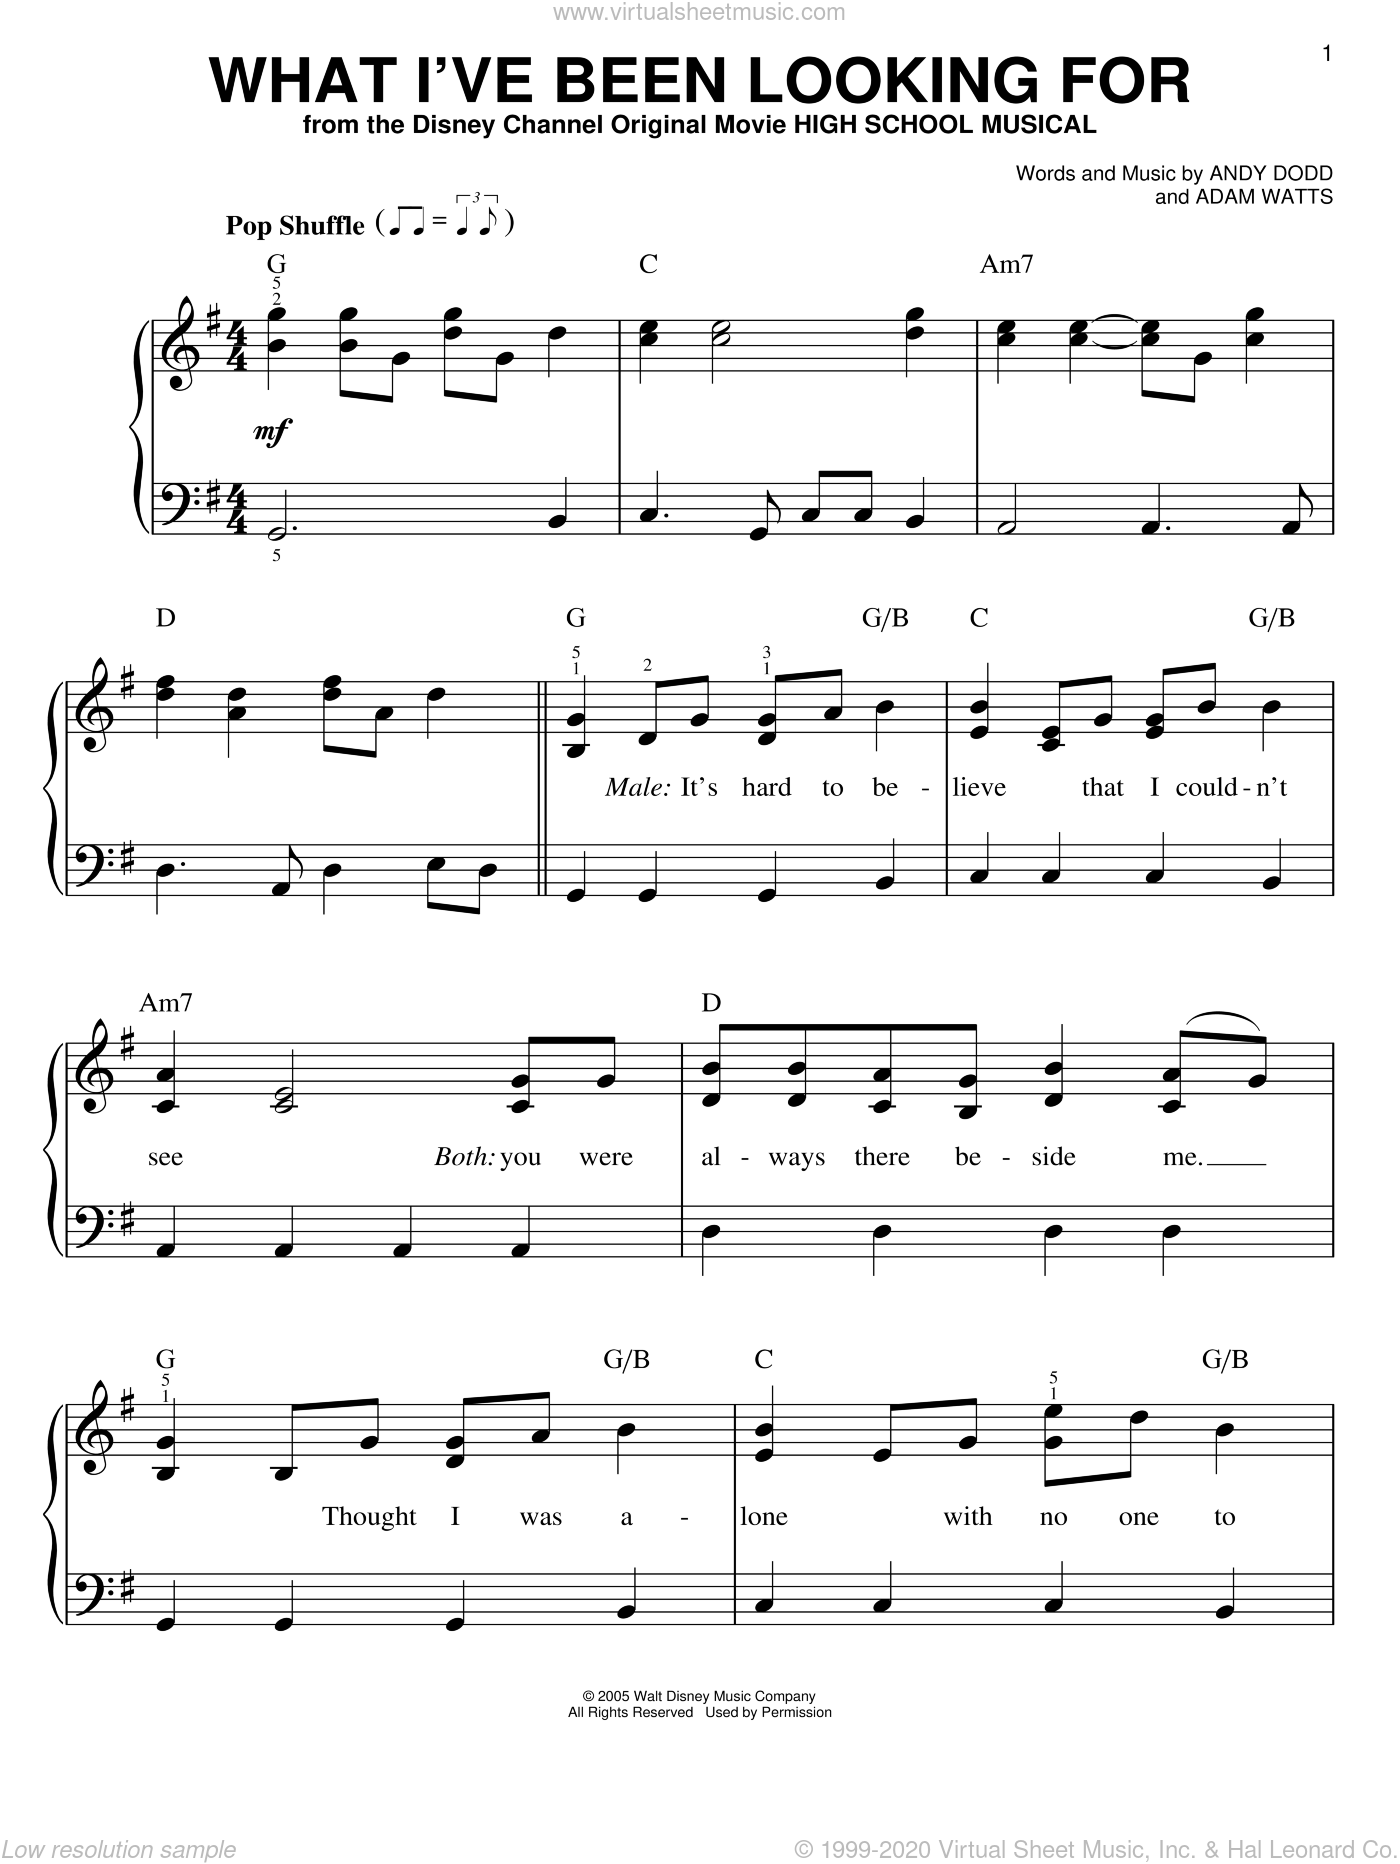 Musical   What I've Been Looking For sheet music easy for piano solo